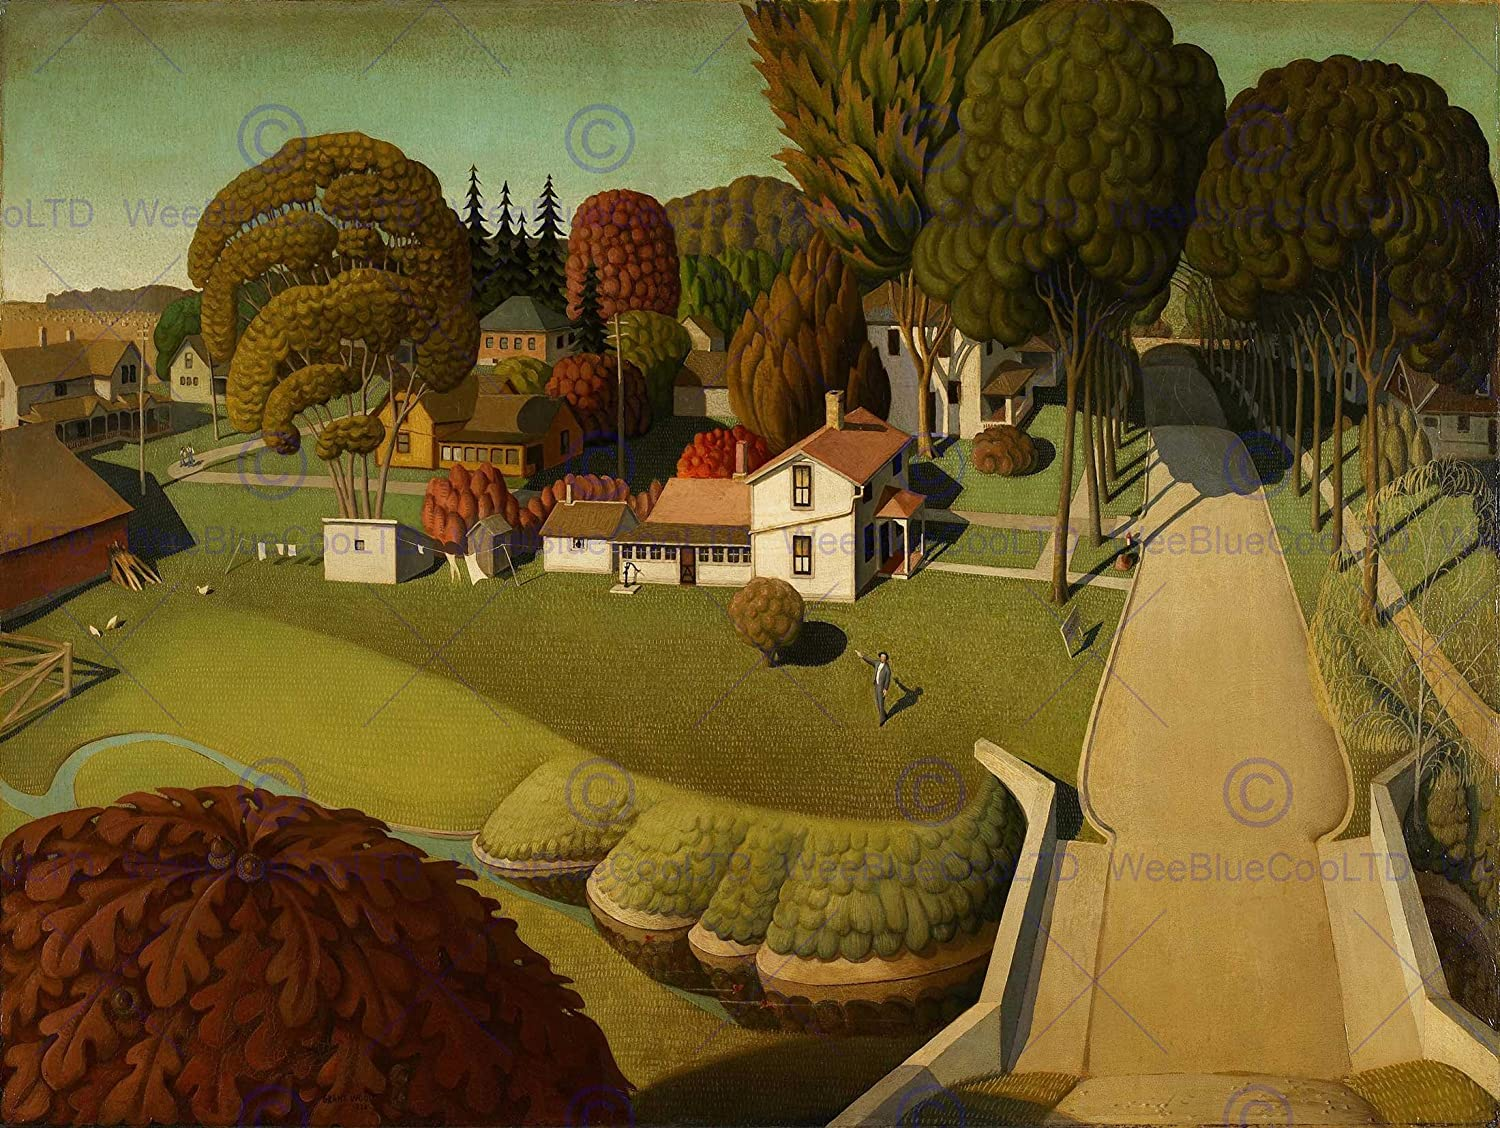 Wee Blue Coo Grant Wood Birthplace of Herbert Hoover Art Print Poster Picture